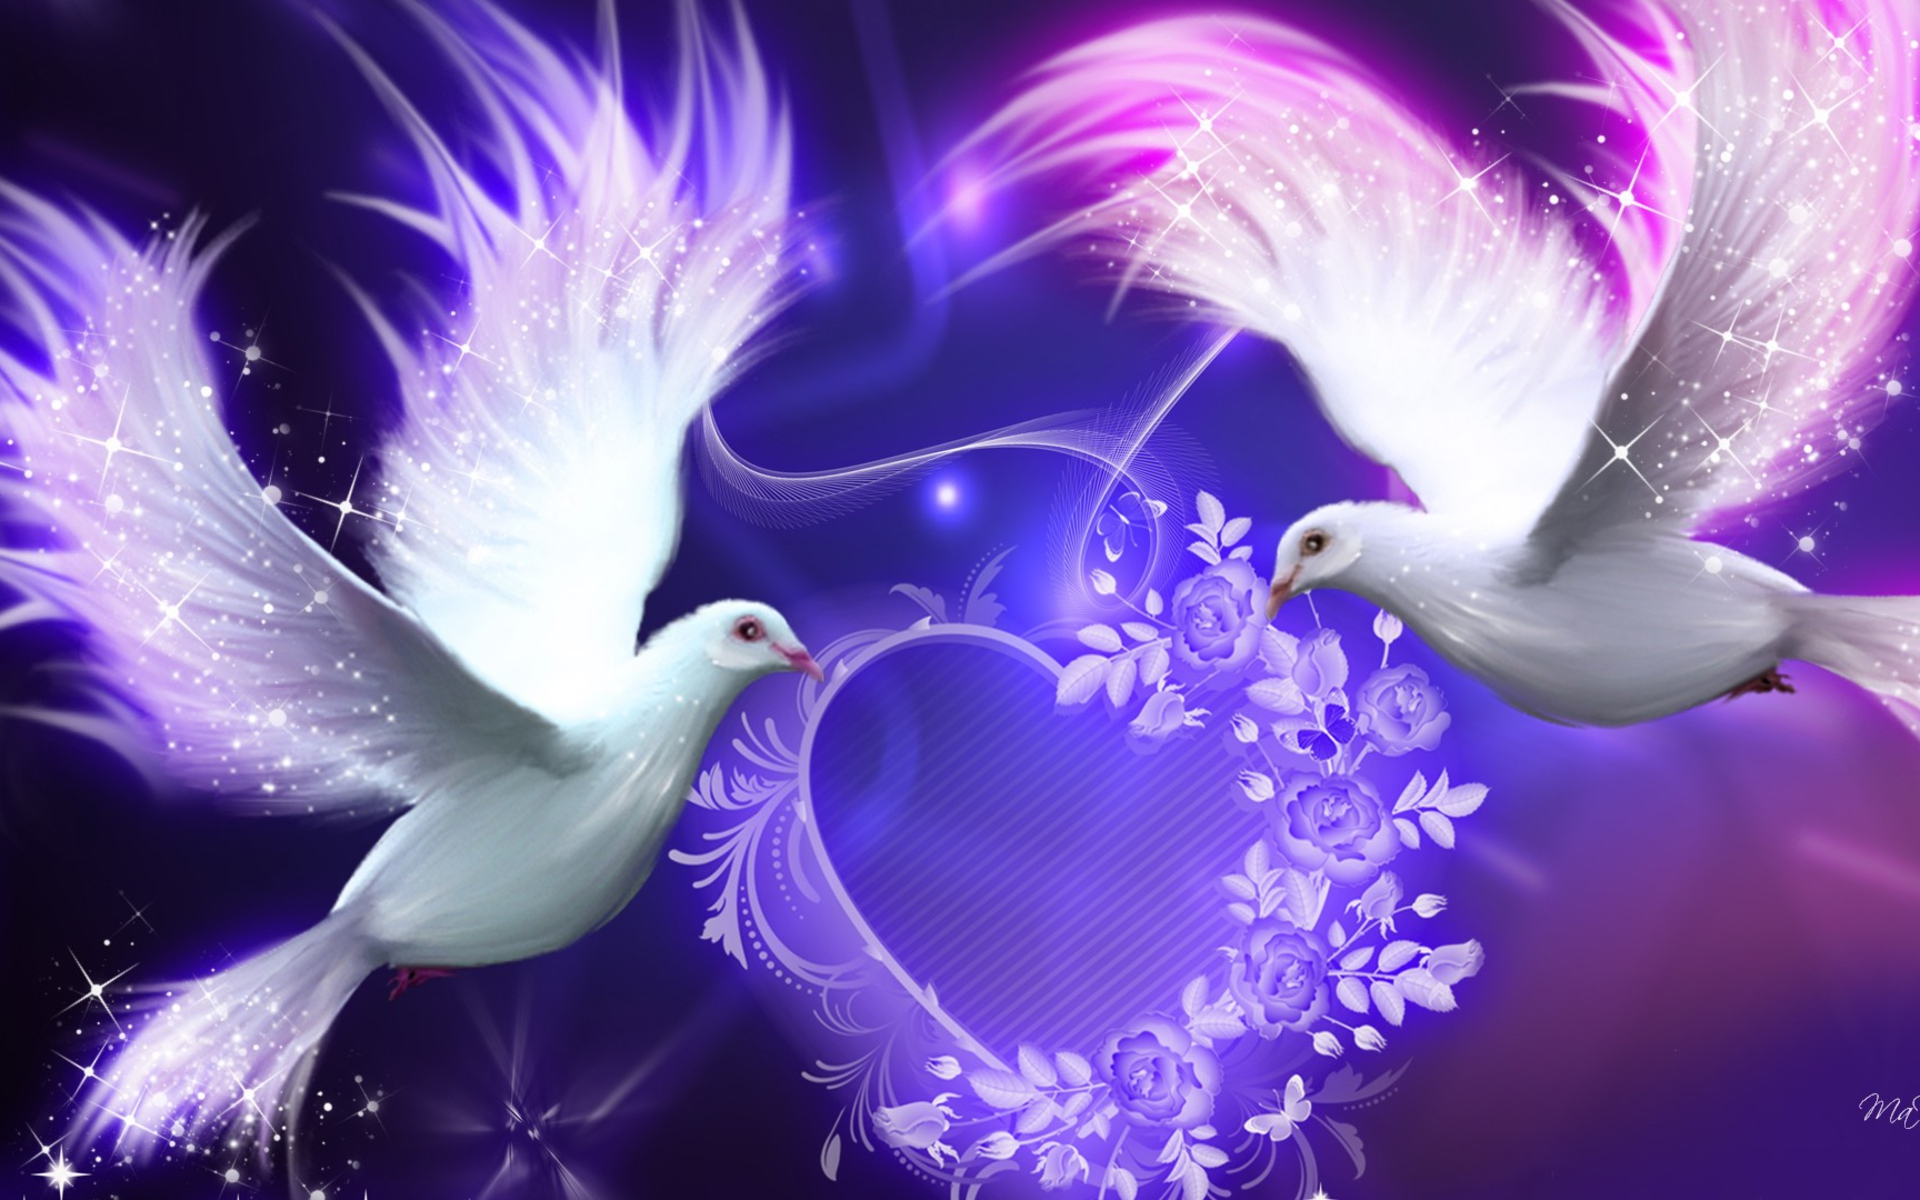 Astral Plane Paranormal Heavens Doves